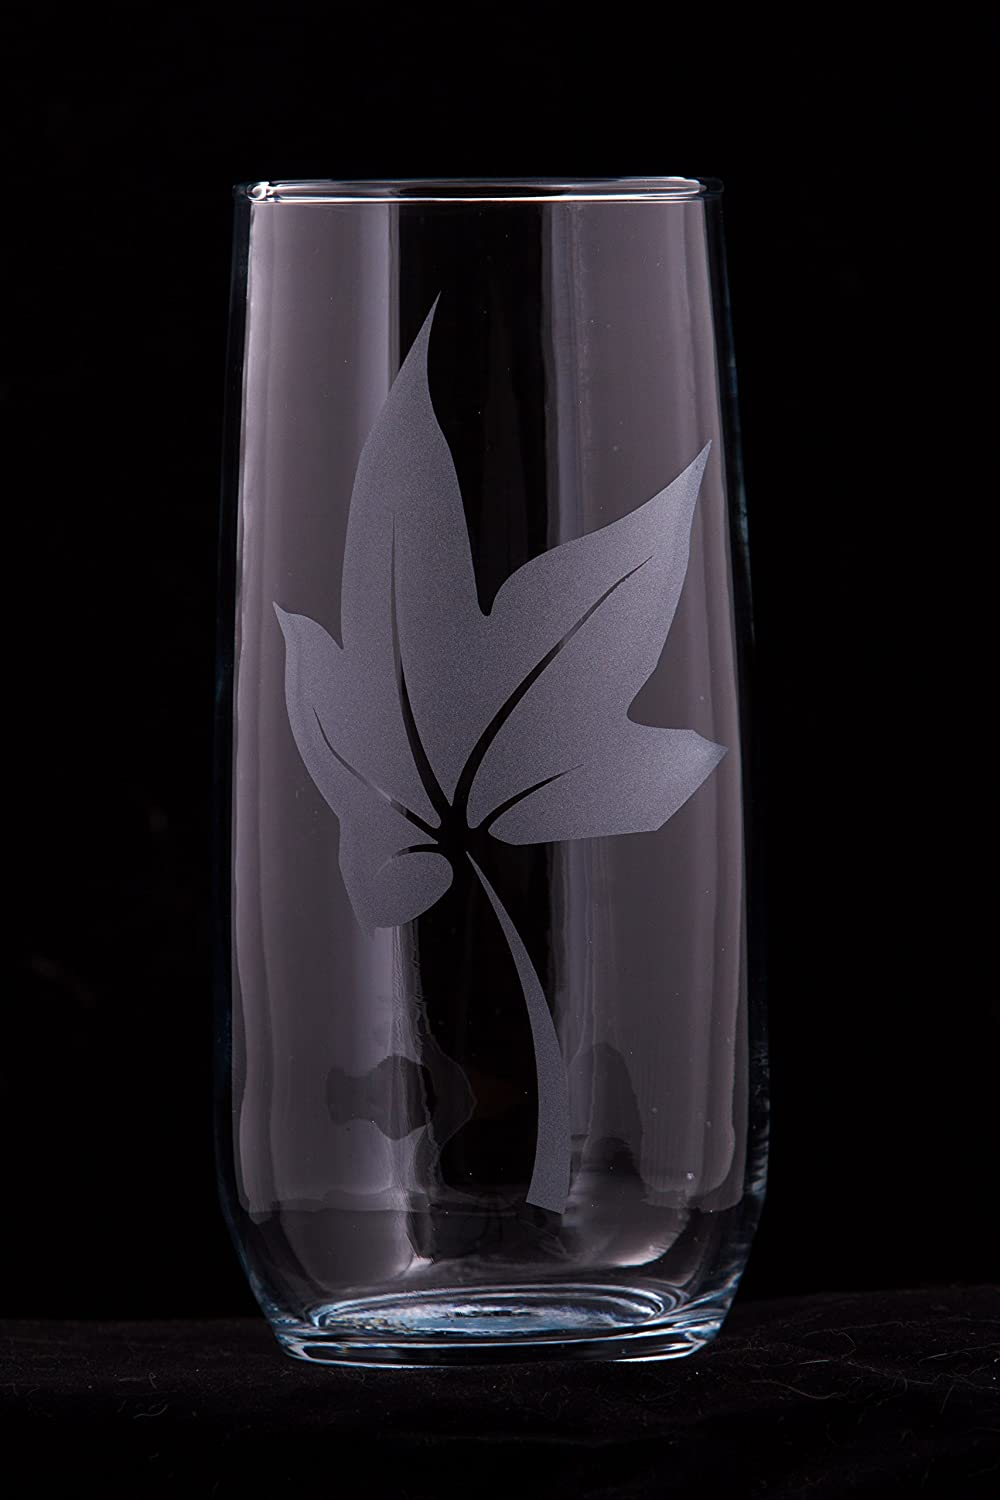 Falling Leaves Glass Tumbler (with optional customization)